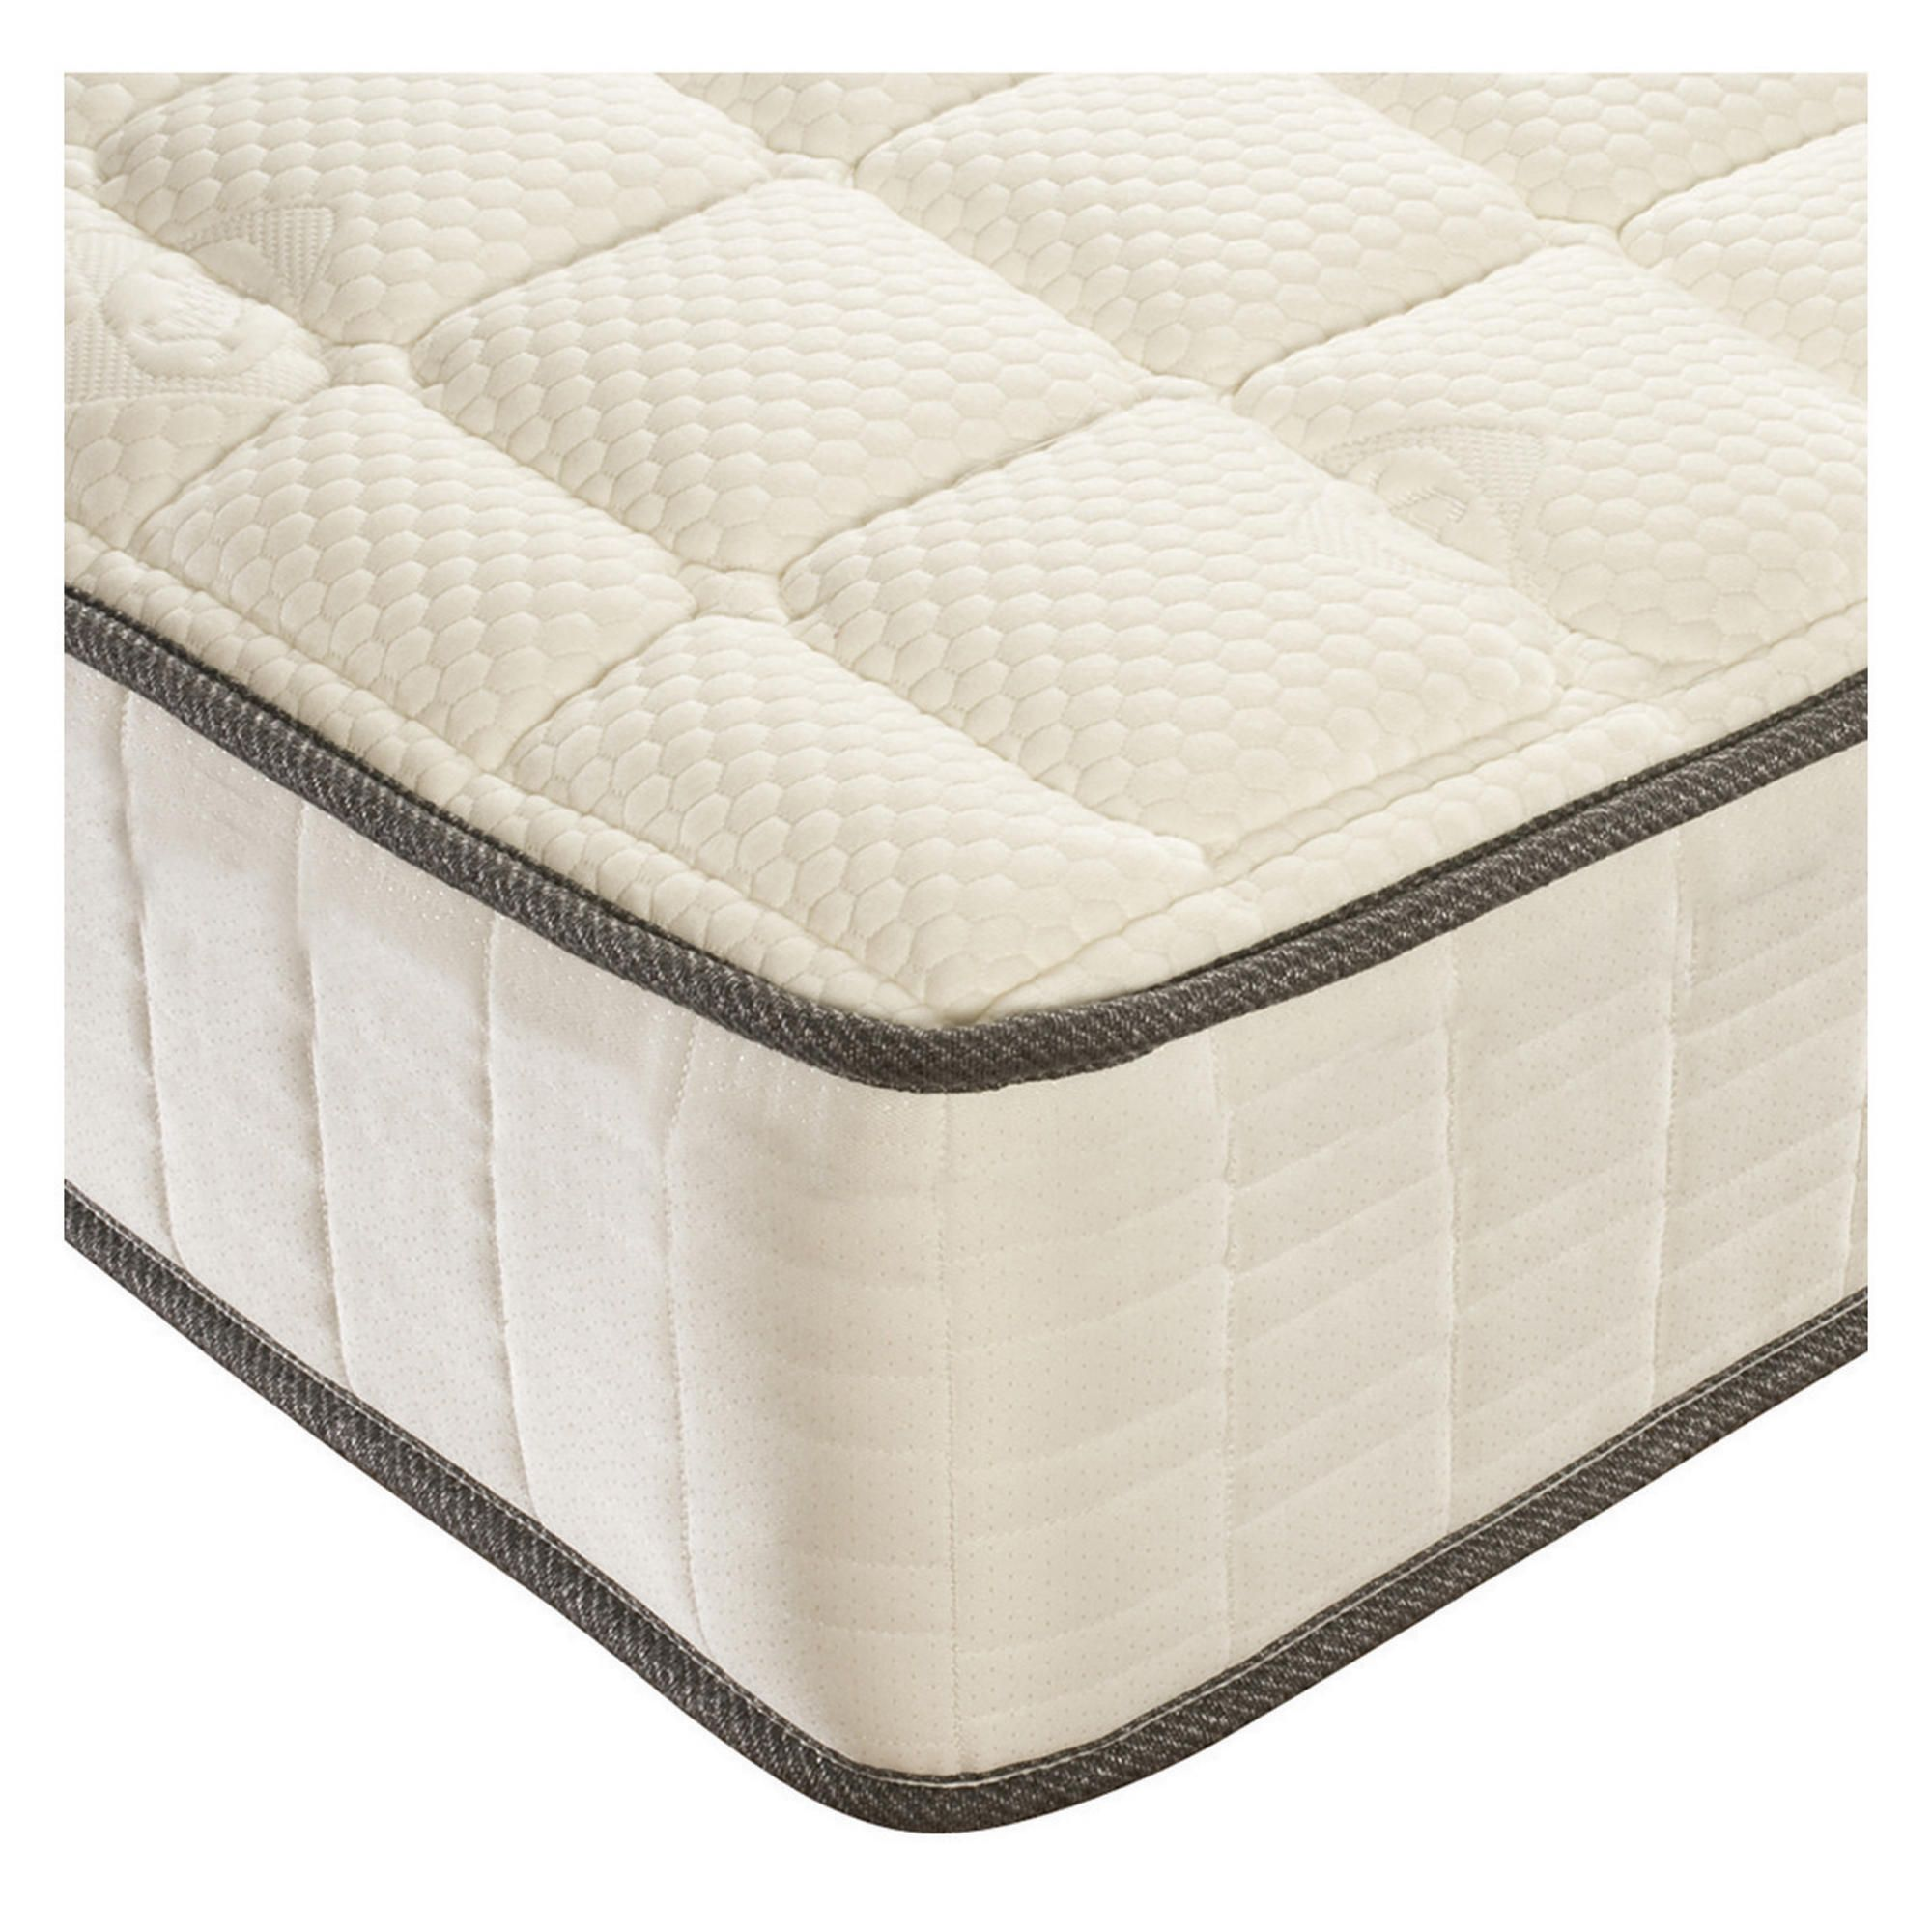 Sealy Pure Finesse Single Mattress at Tesco Direct